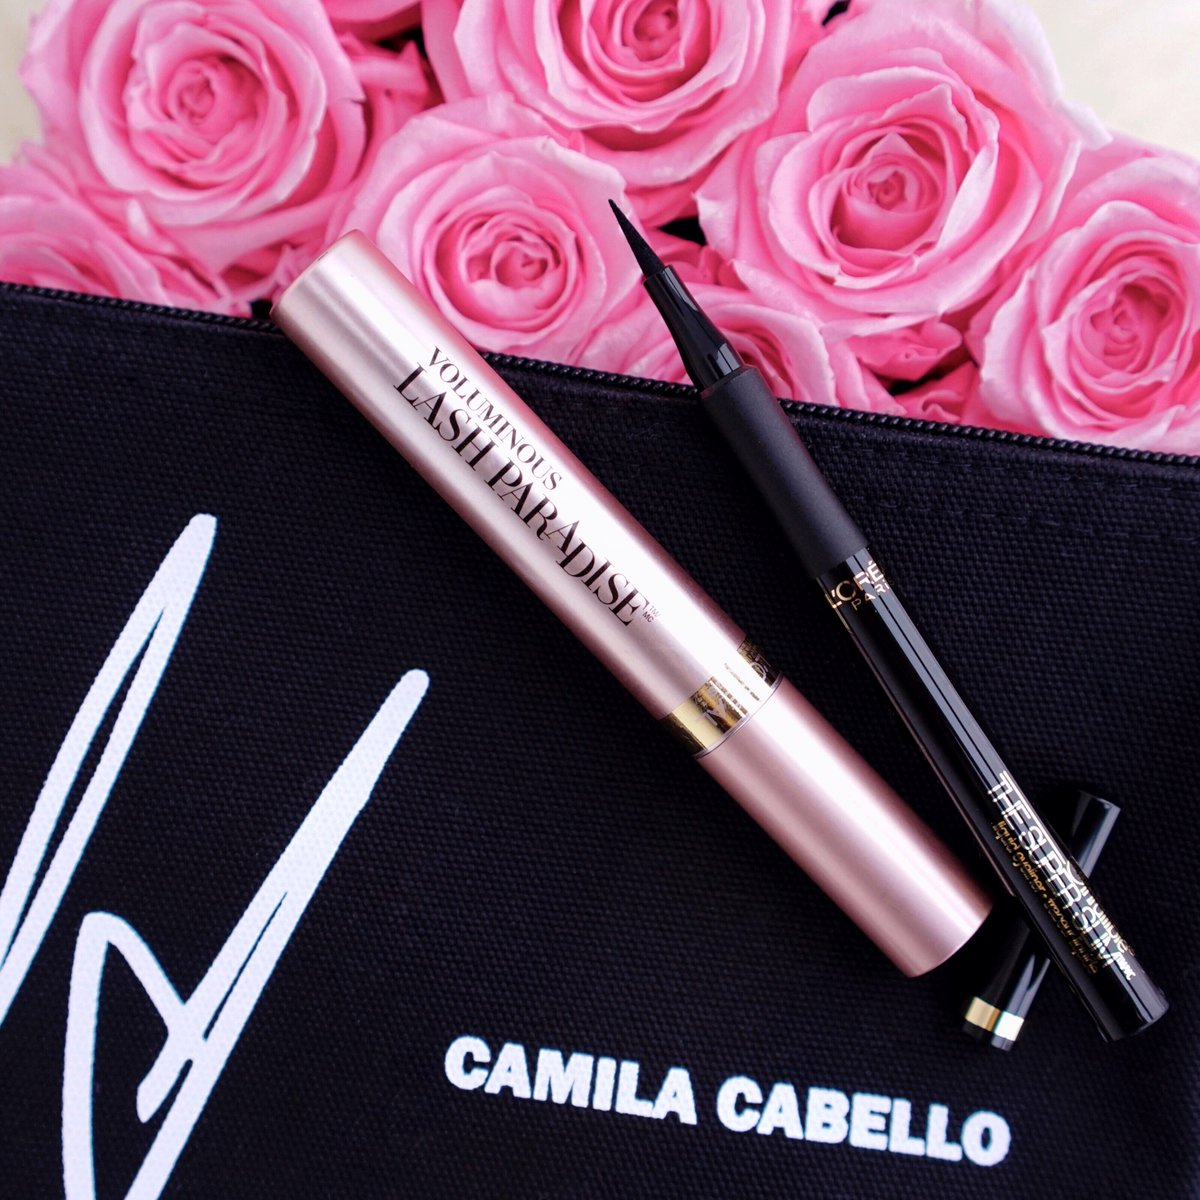 To celebrate the release of @Camila_Cabello's new album, we're launching a Camila makeup bag with L'Oréal Paris products so you can get Camila's eye look and glowing skin ✨ Purchase a discounted code to download the album or shop the makeup bag here: http://bit.ly/2Dpd7Ej